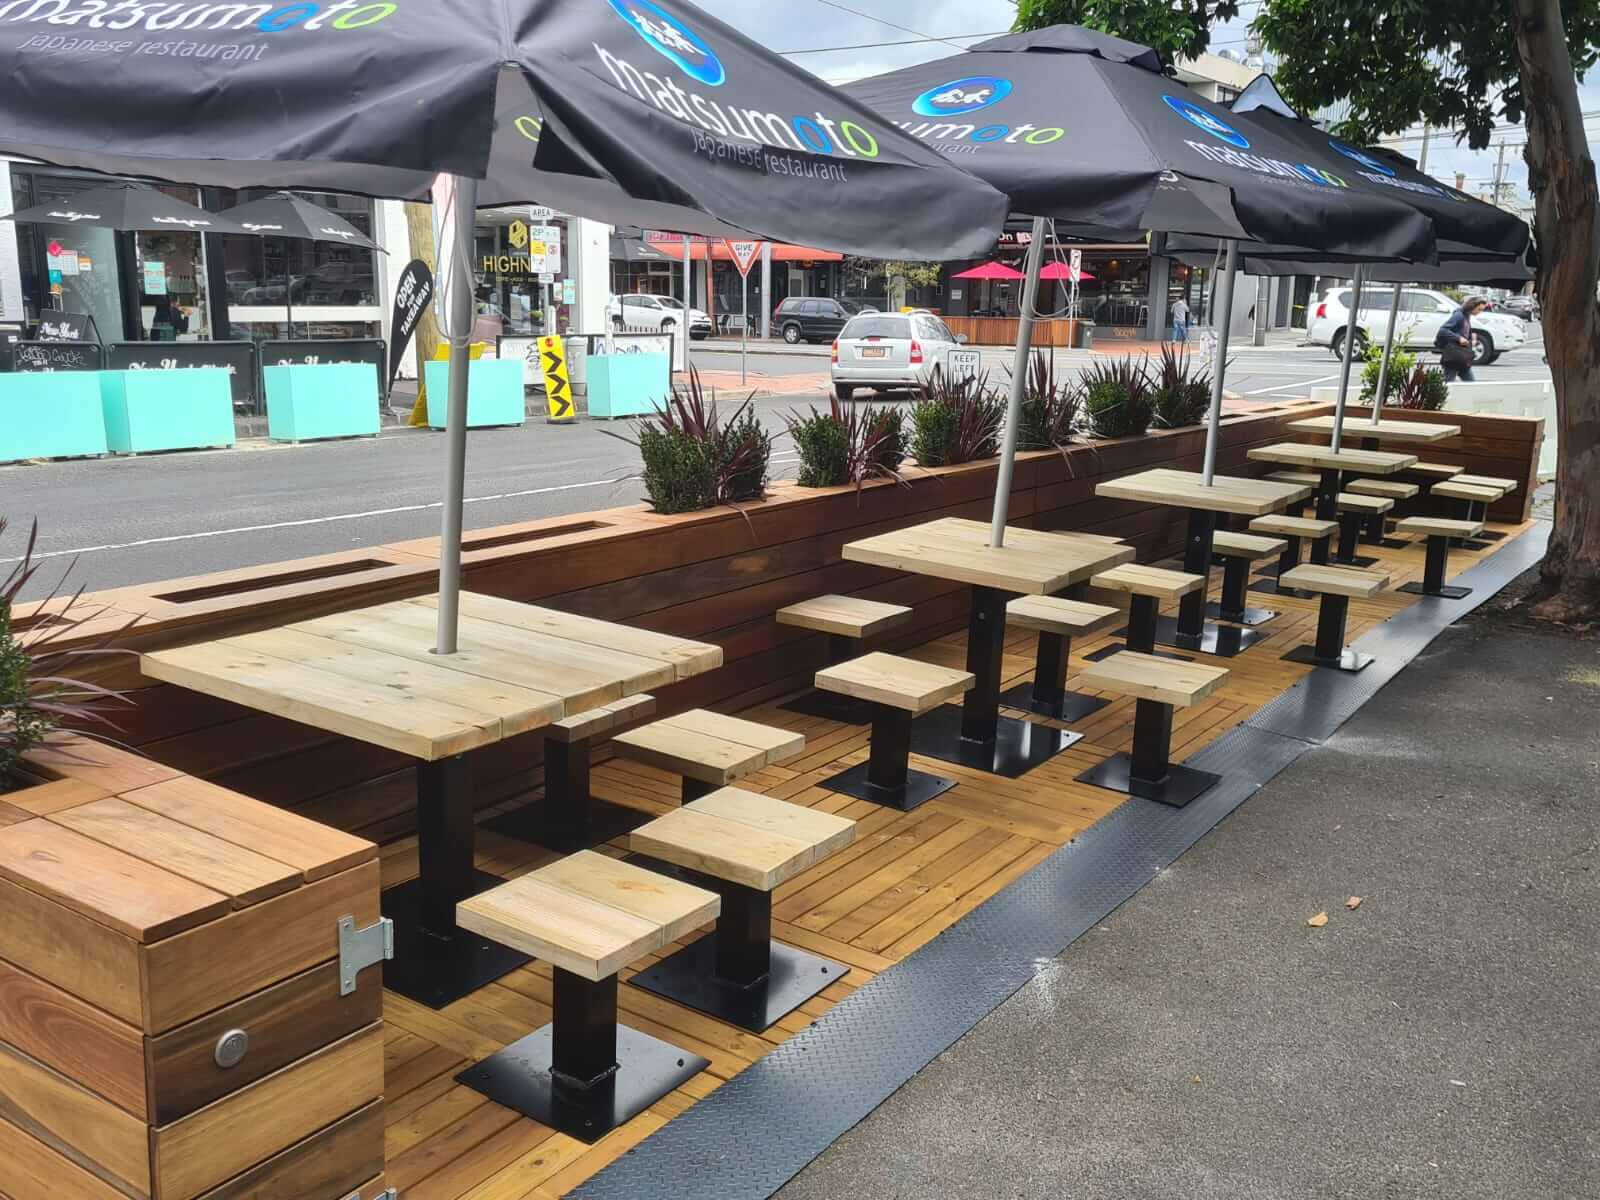 Parklet - Outdoor dining area